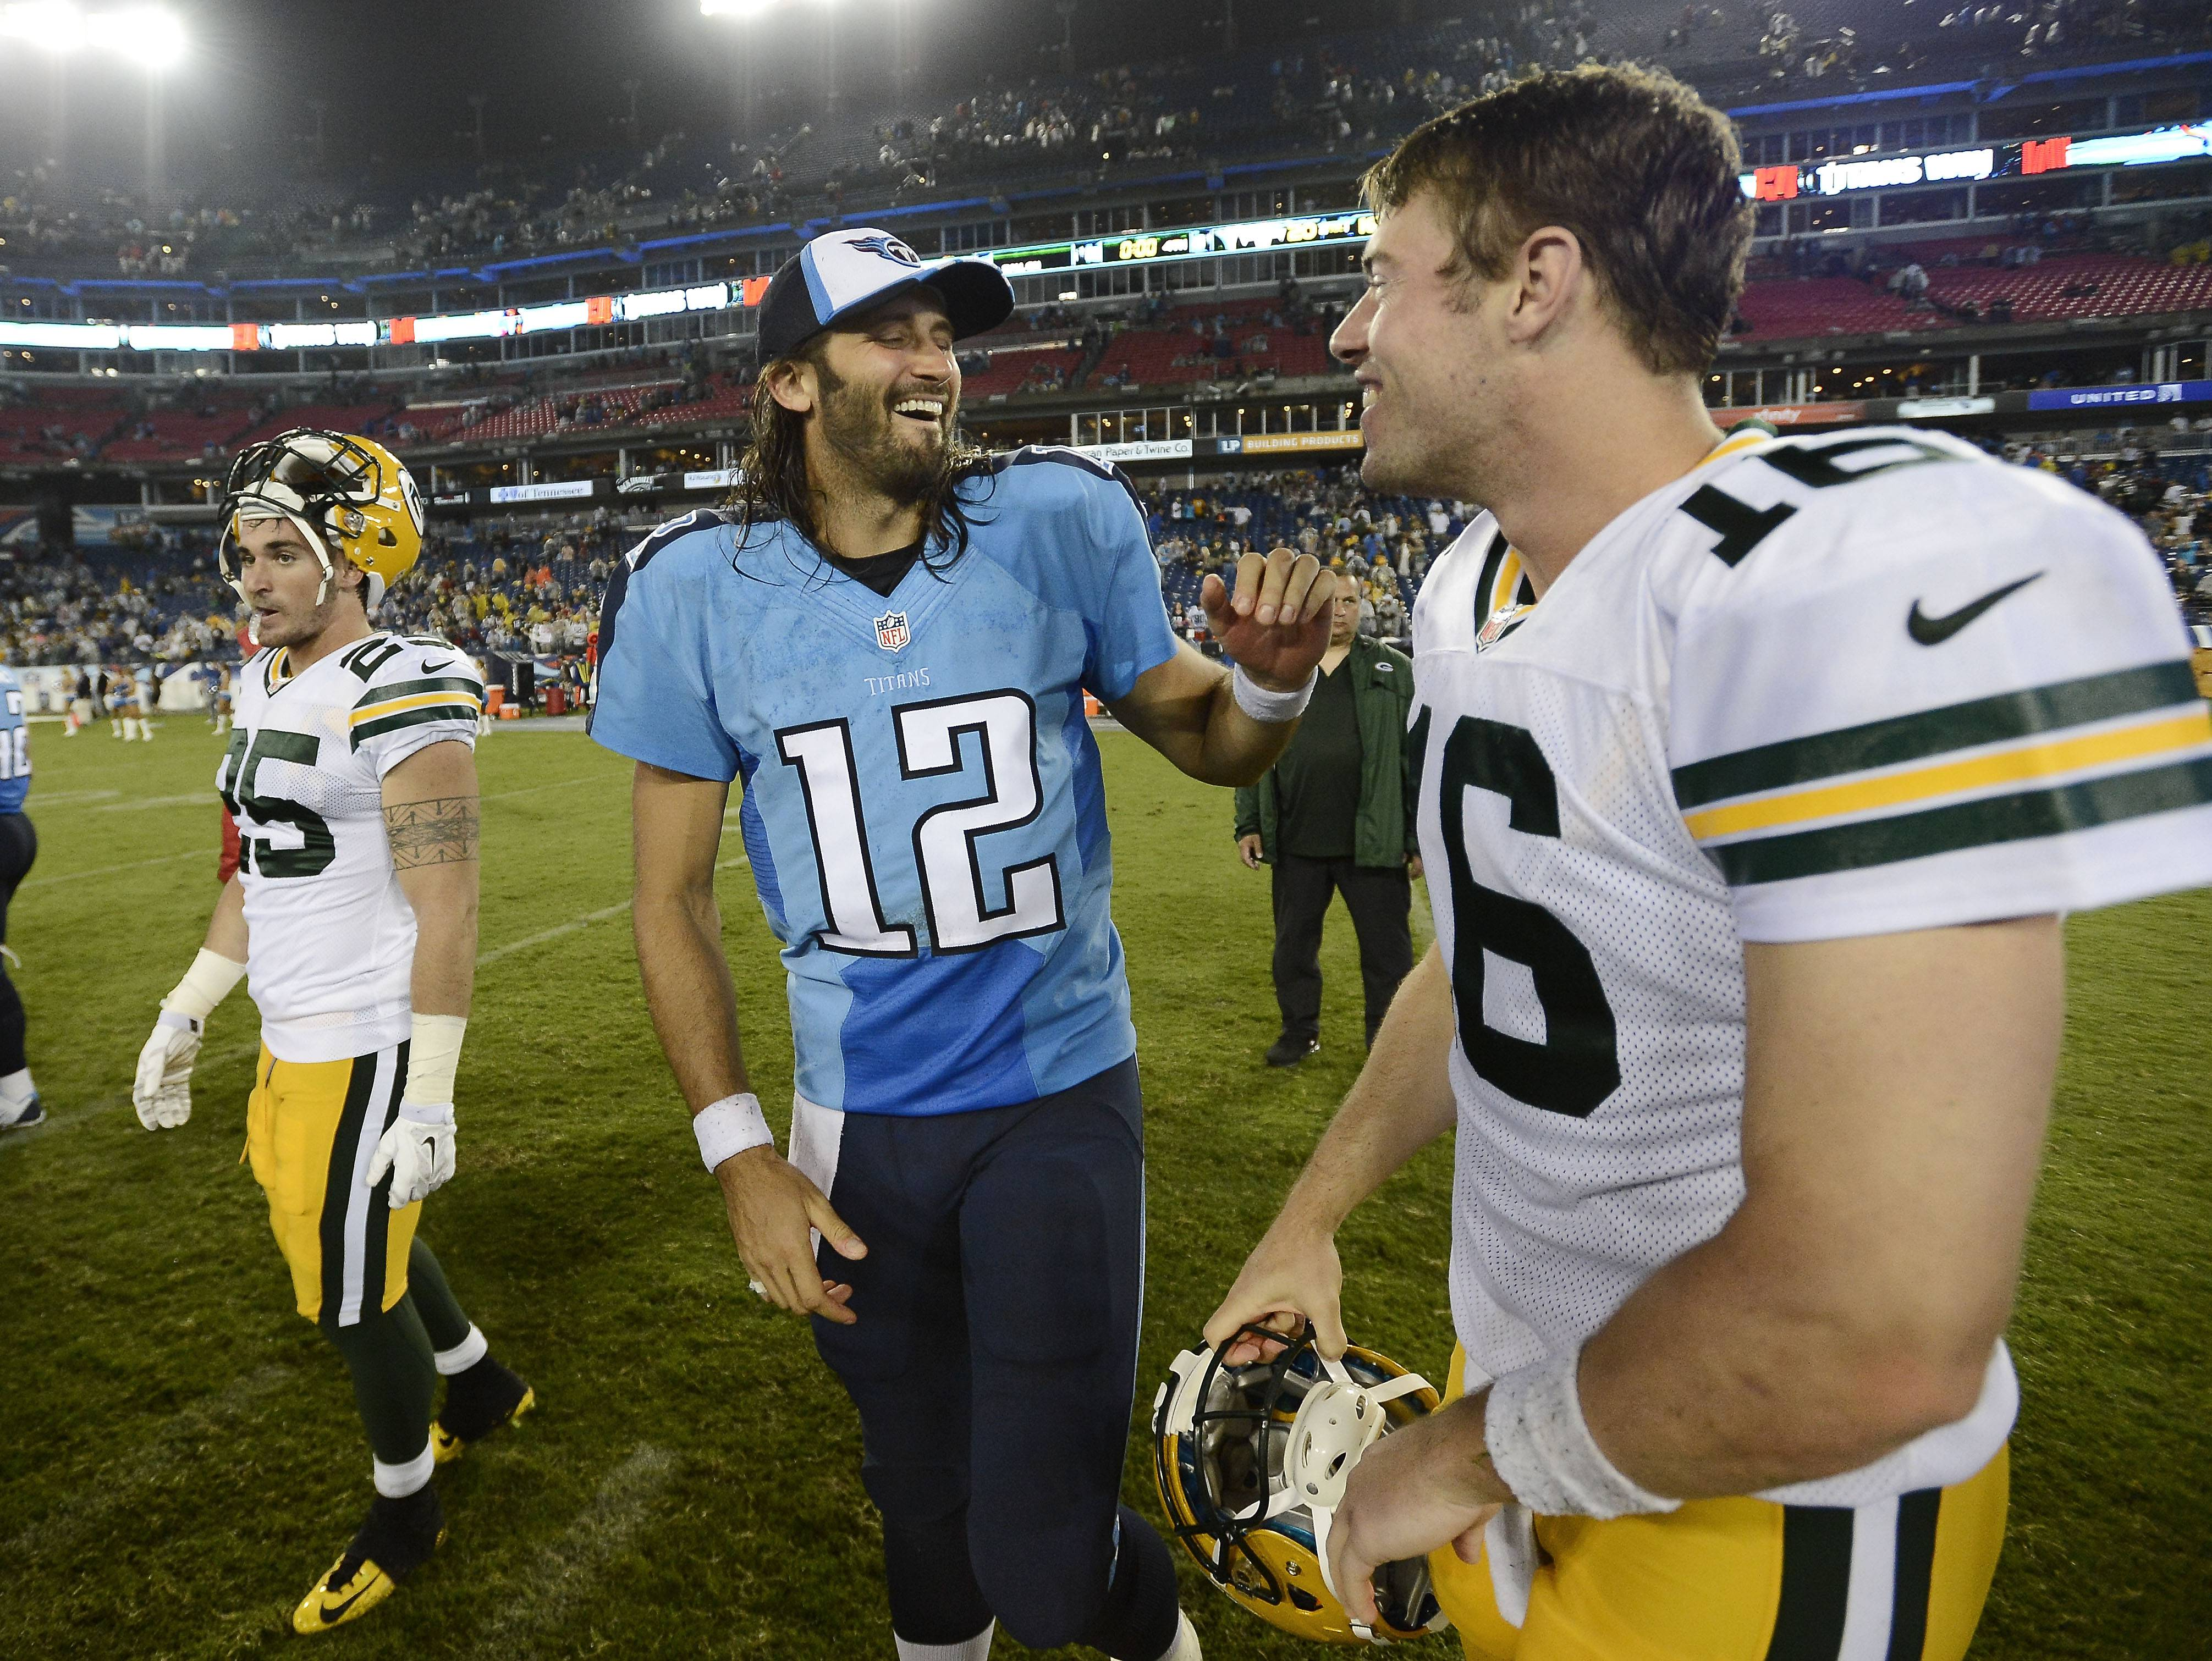 Tennessee Titans quarterback Charlie Whitehurst (12) talks with Green Bay Packers quarterback Scott Tolzien (16) after the Titans defeated the Packers last Saturday. The Packers will play at St. Louis on Saturday.